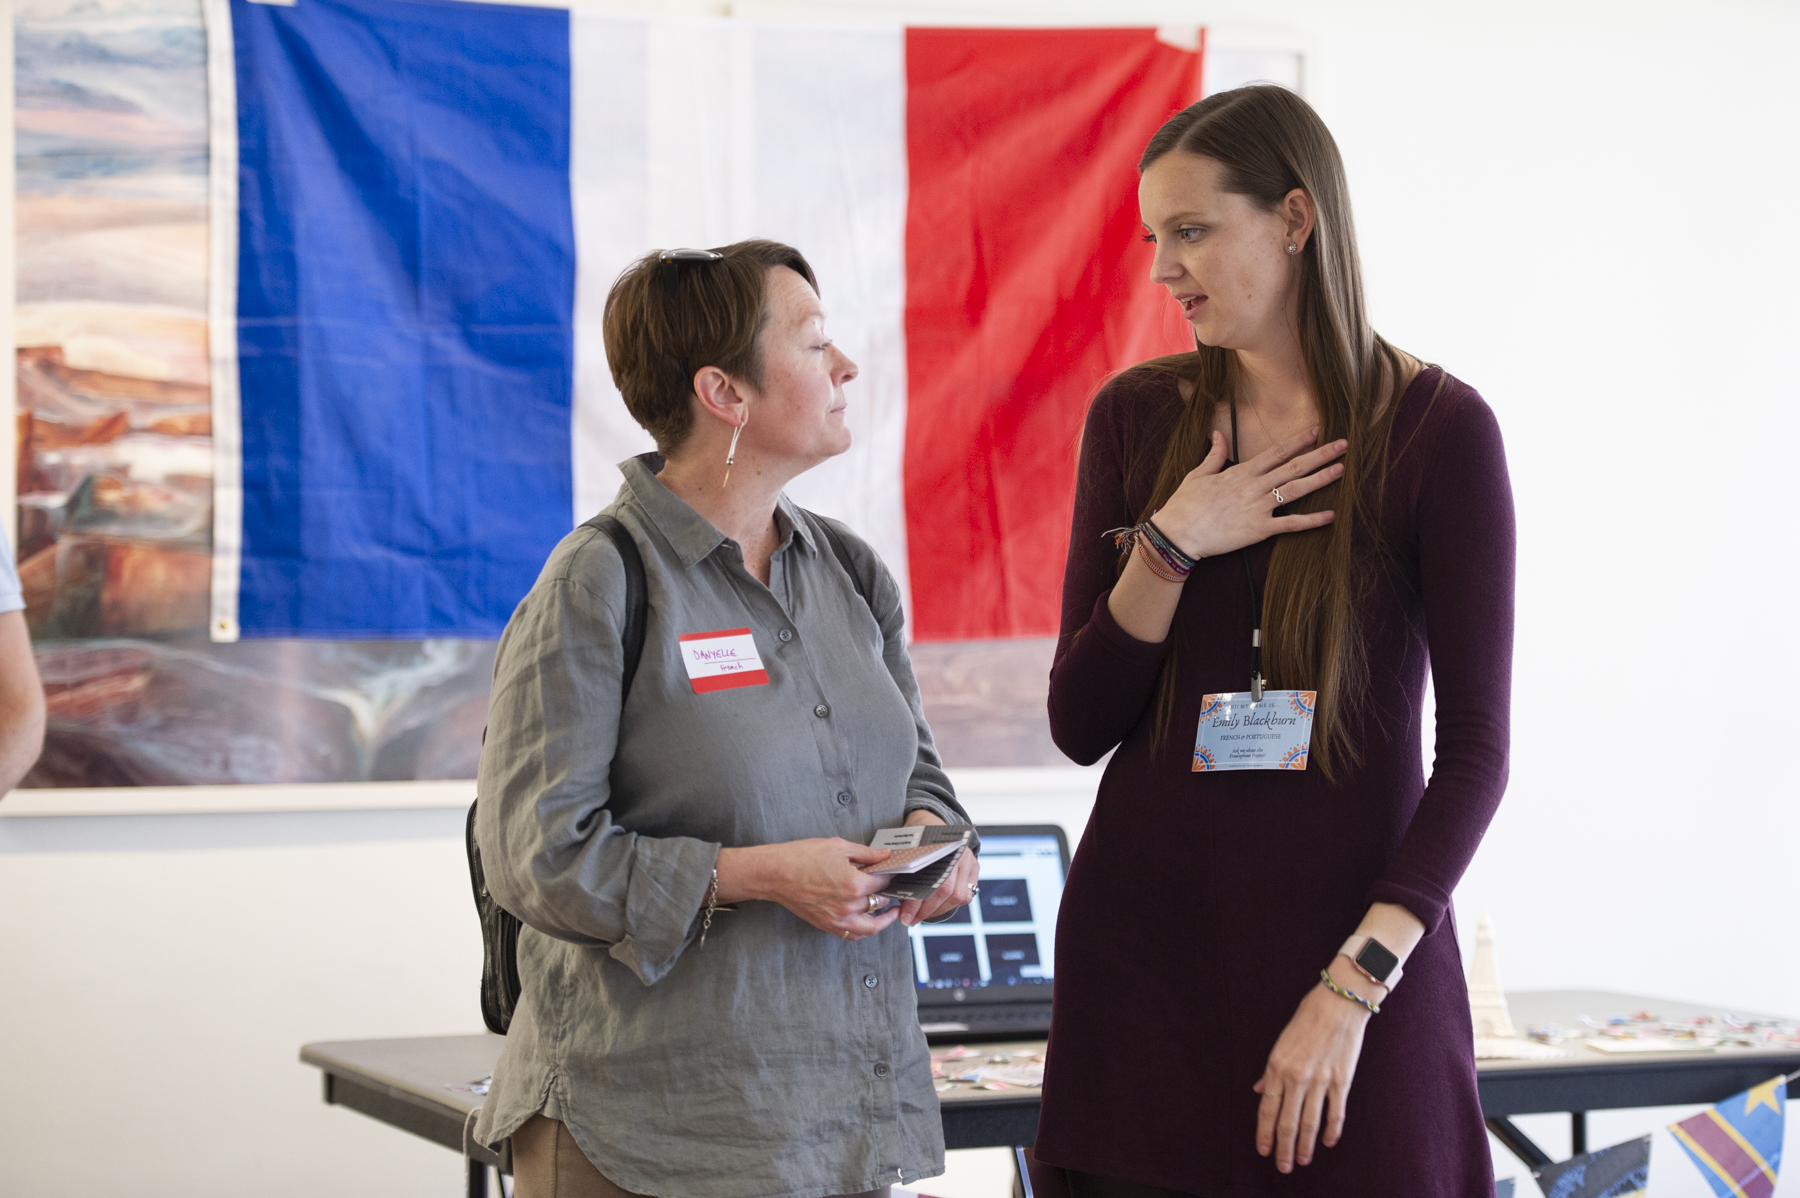 An attendee of the showcase speaking to a student